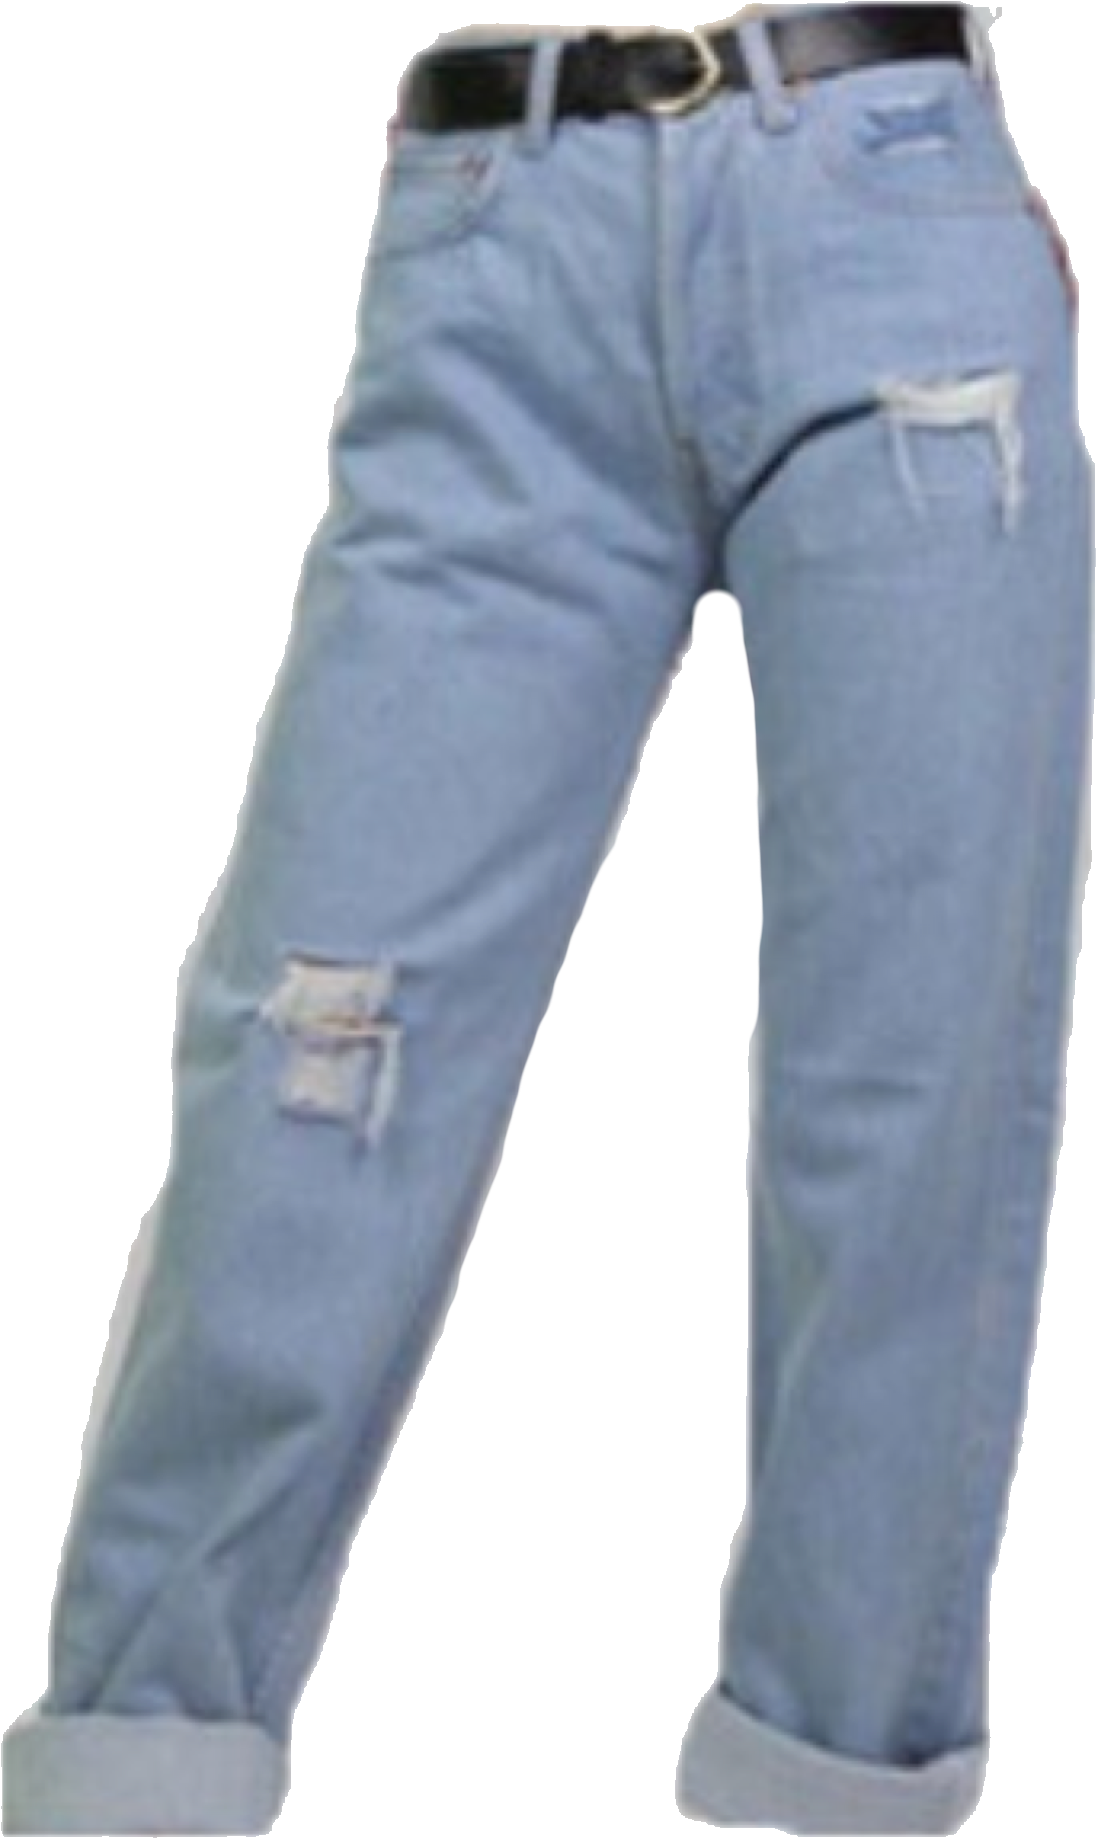 Mom jeans png. Download image with no